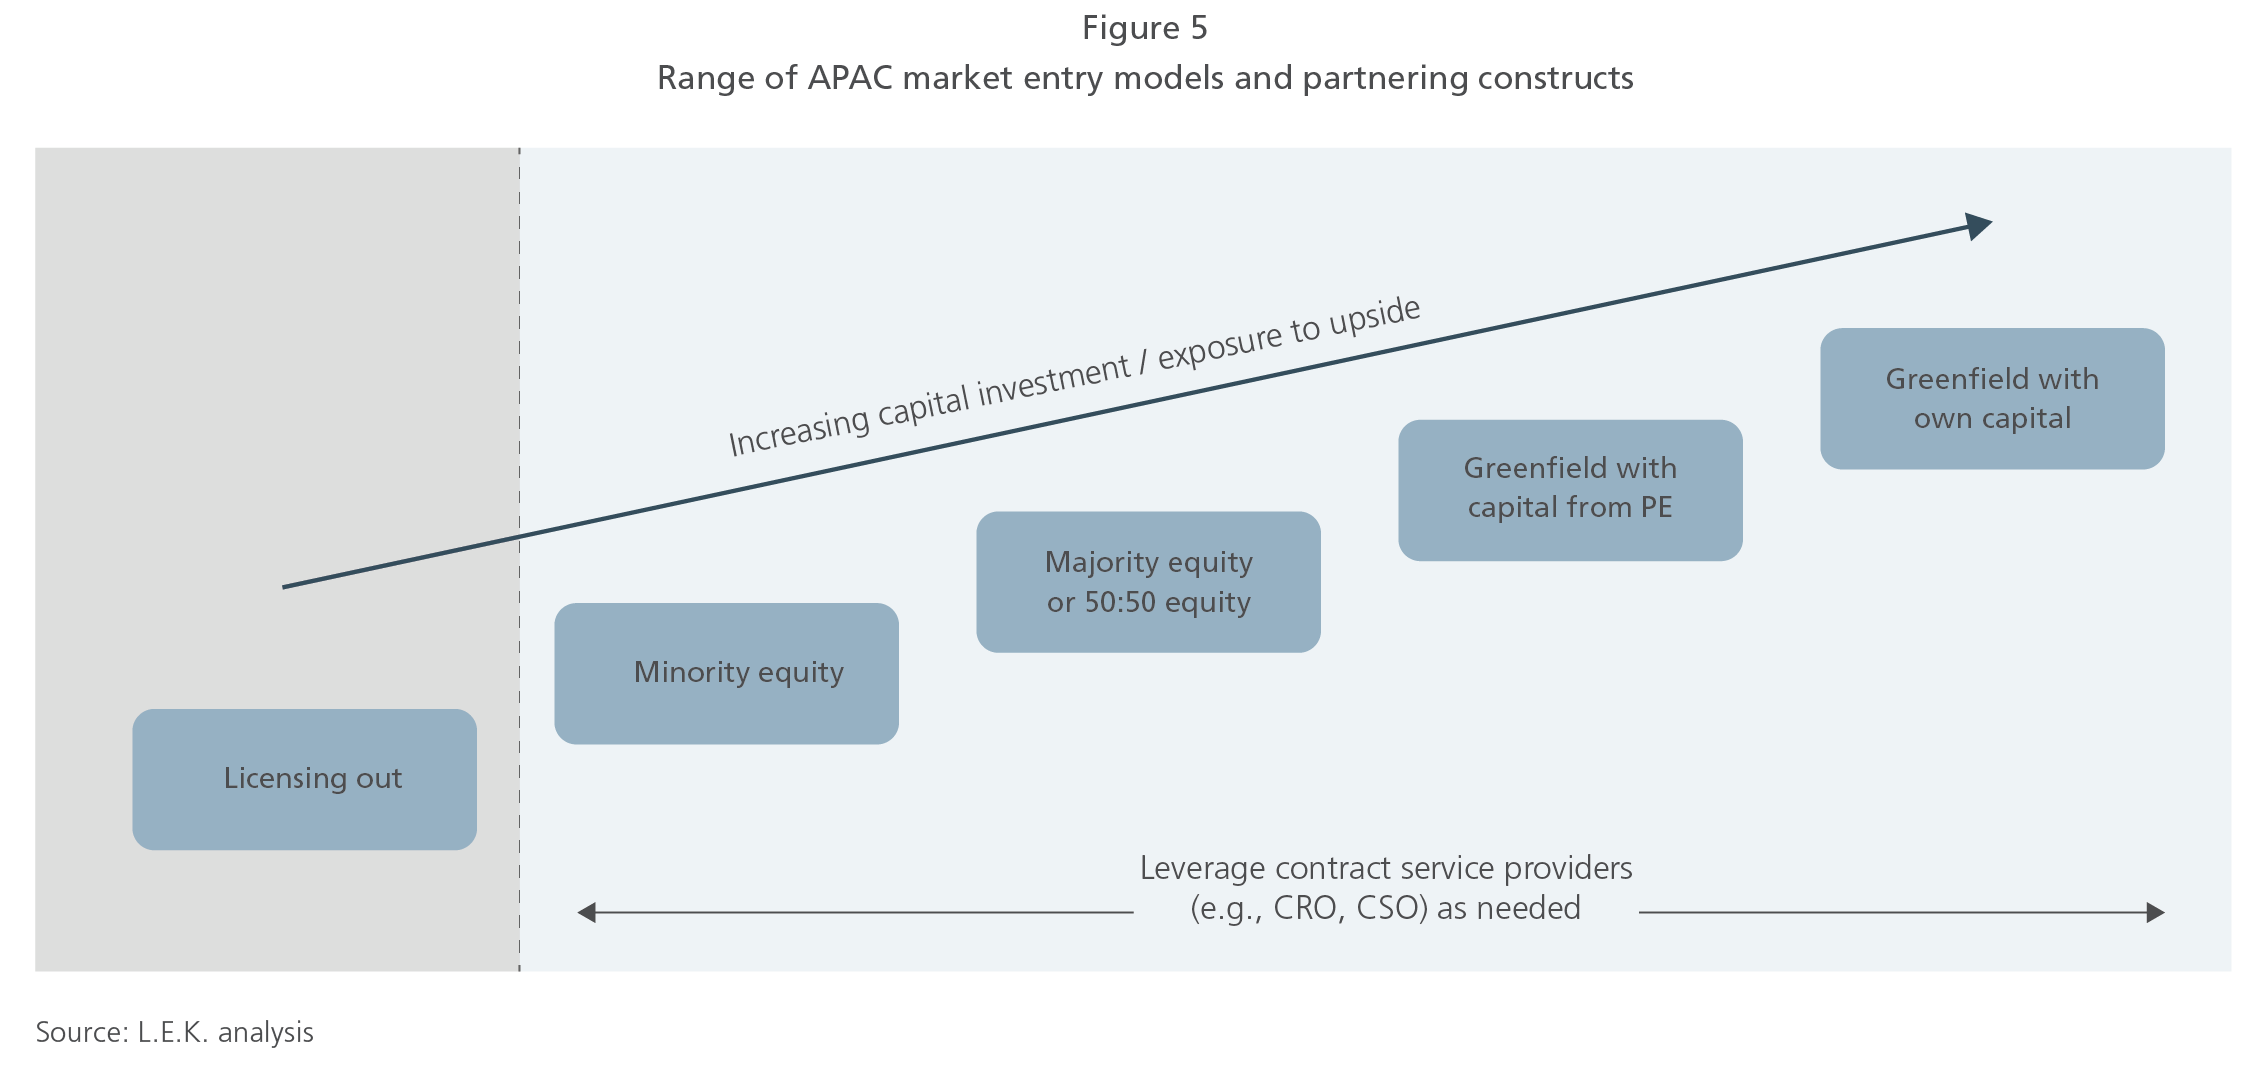 Range of APAC market entry models and partnering constructs